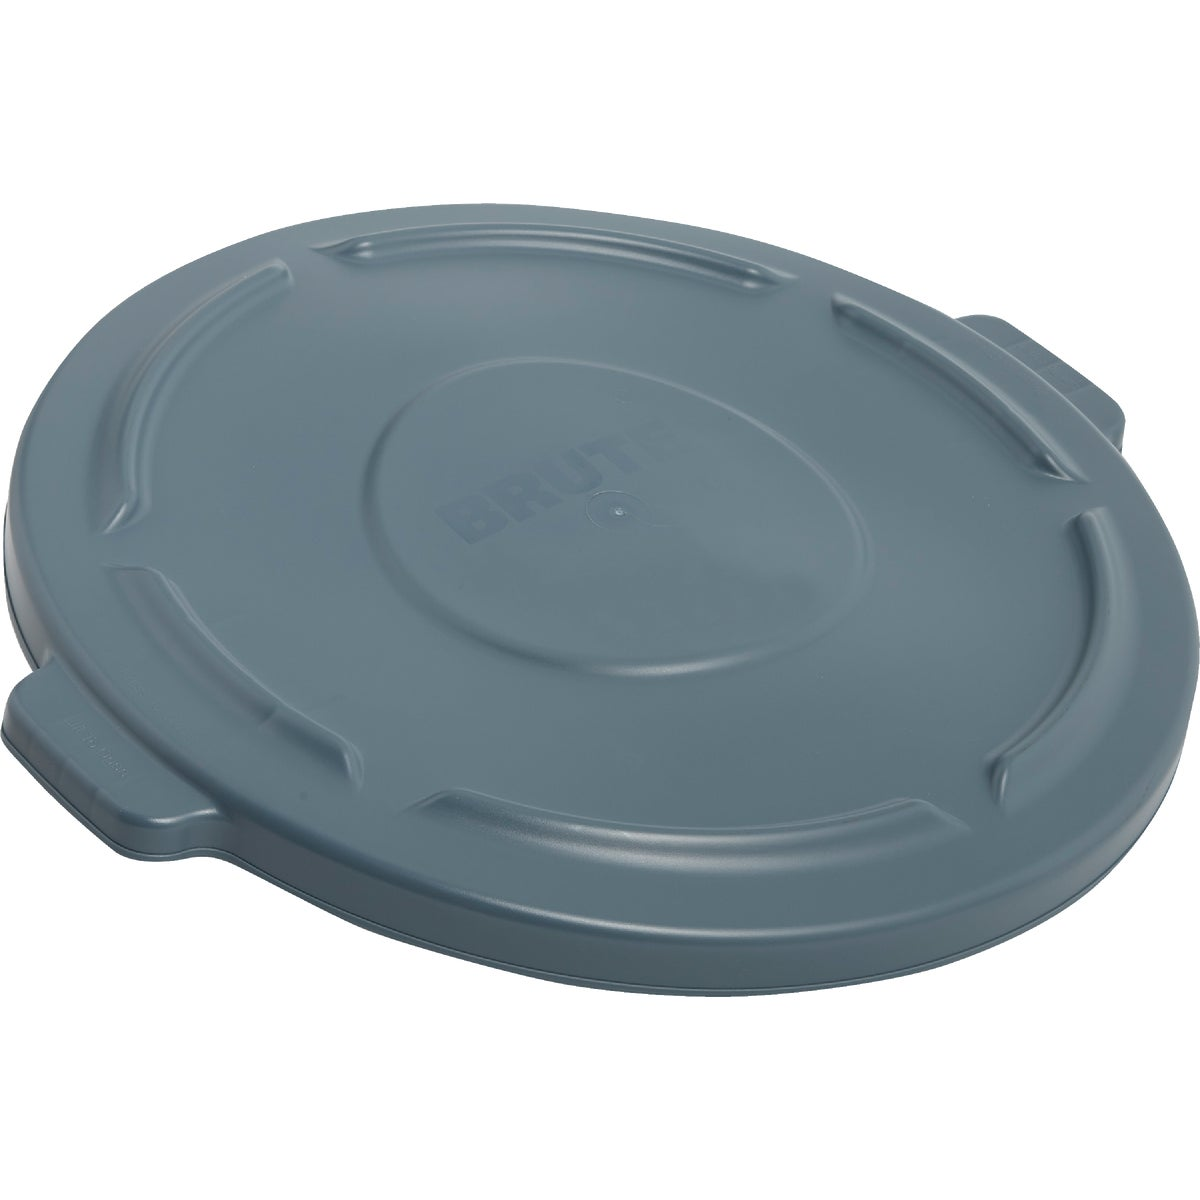 BLACK TRASH CAN LID - FG264560BLA by Rubbermaid Comm Prod